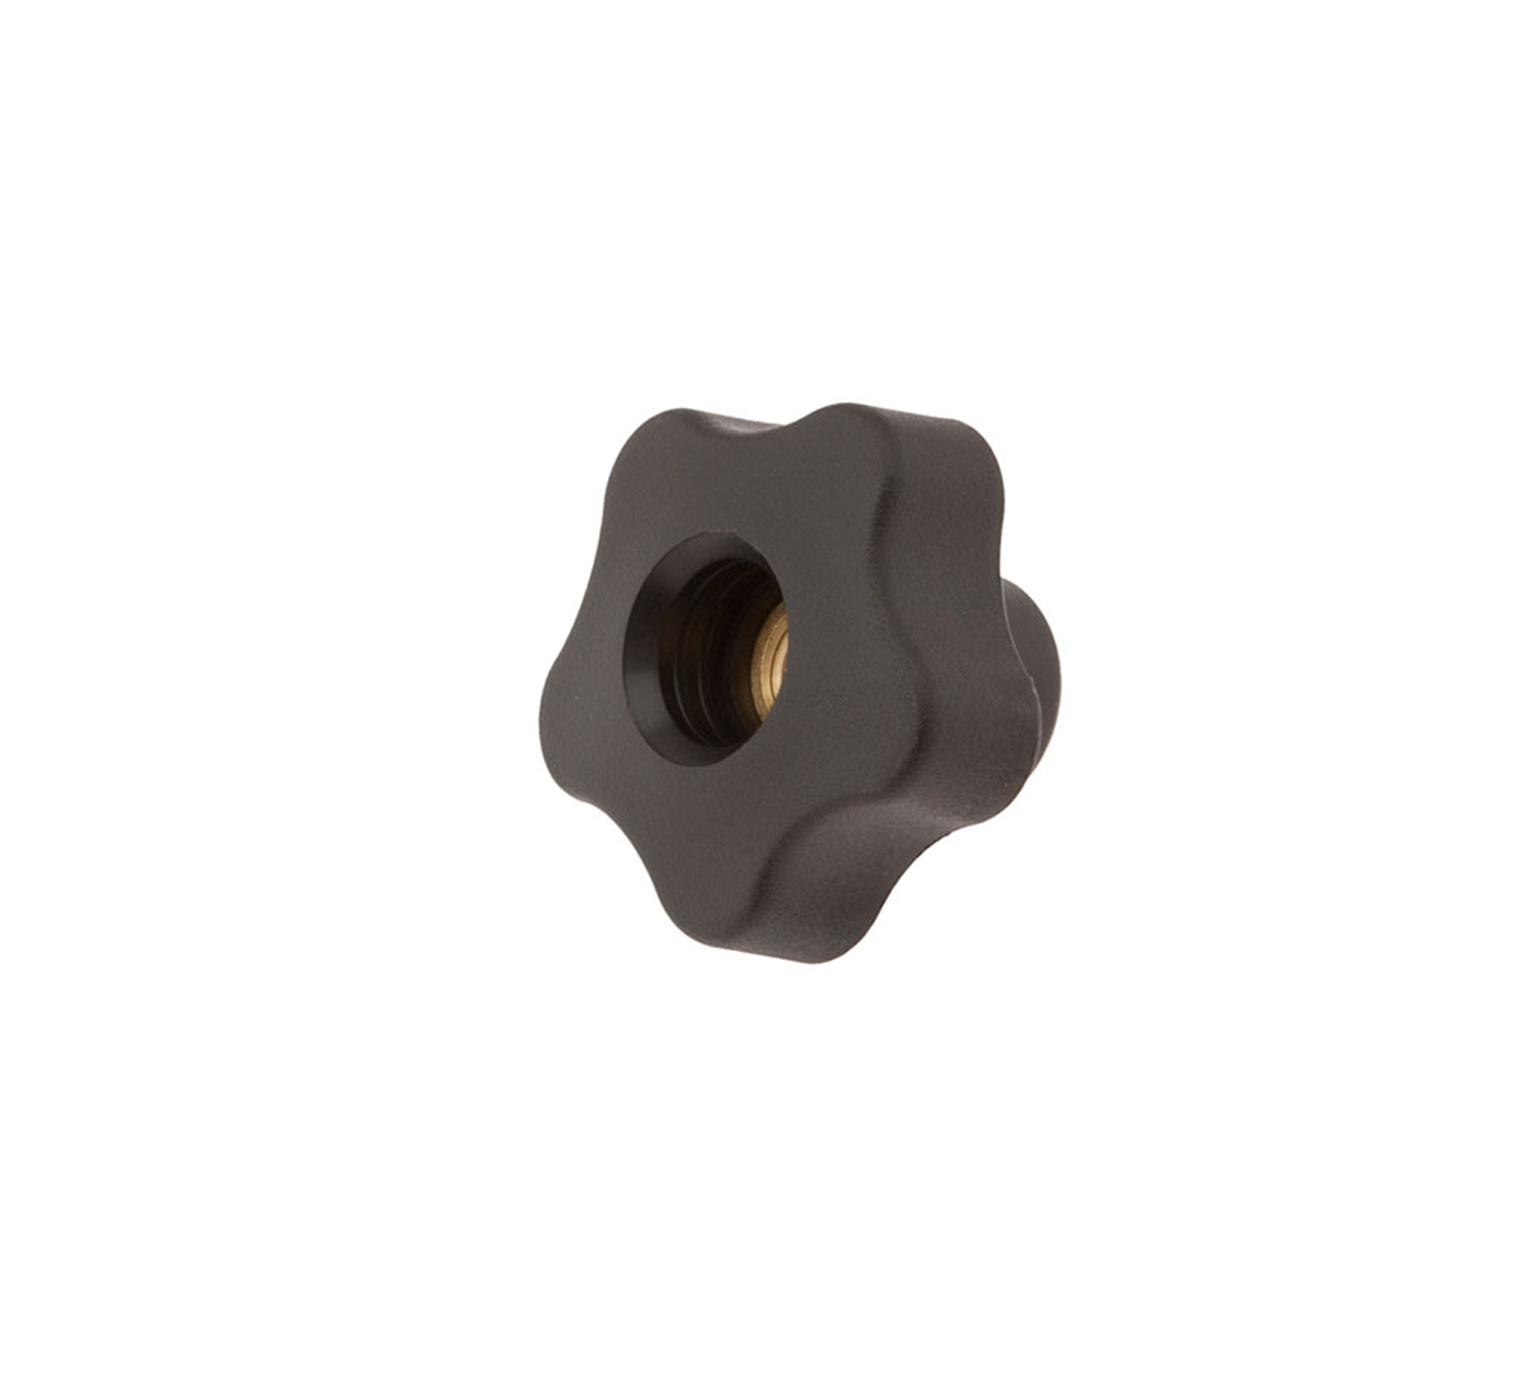 1011094 Polypropylene Star Knob - 1.5 x 1.07 in alt 1